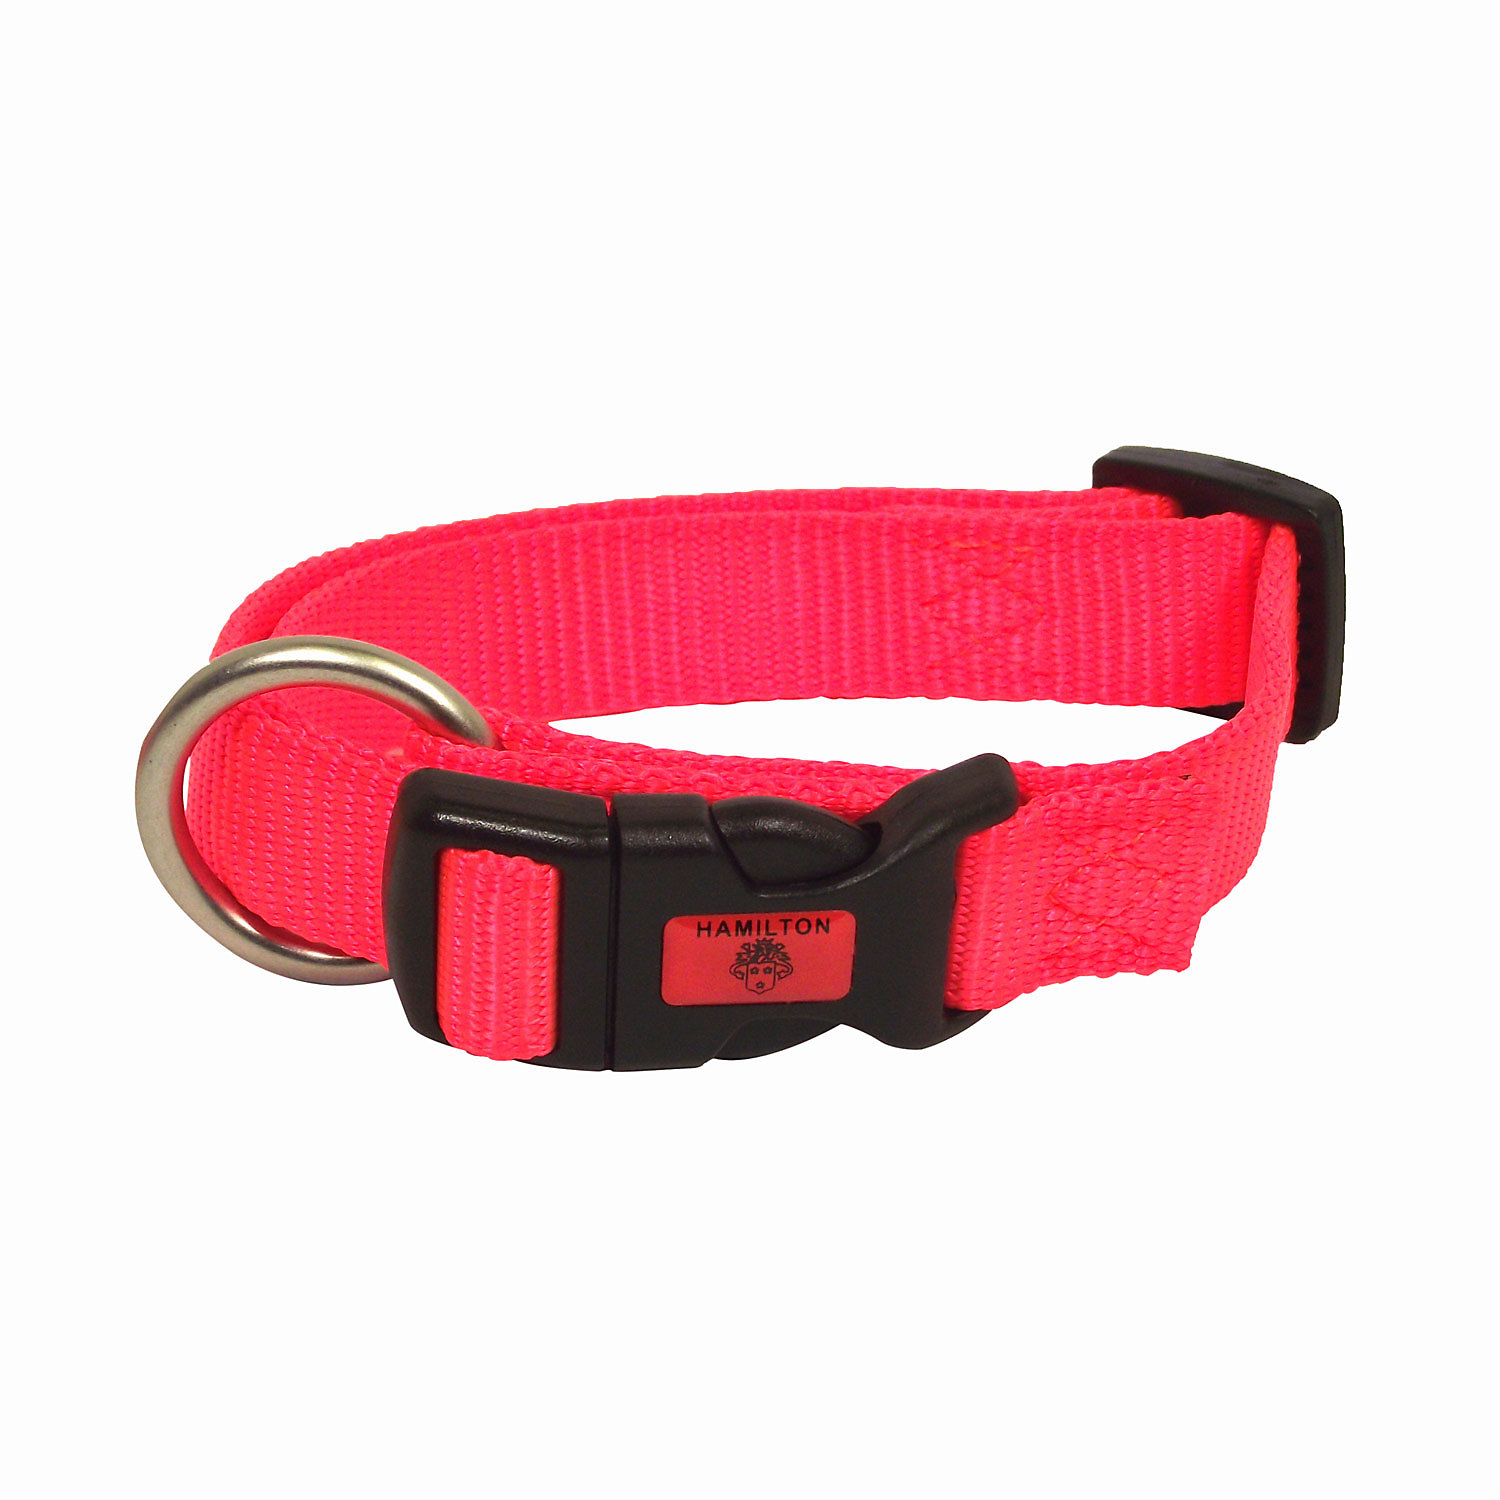 Hamilton Adjustable Nylon Dog Collar In Orange Medium 10 16 L X 3/4 W